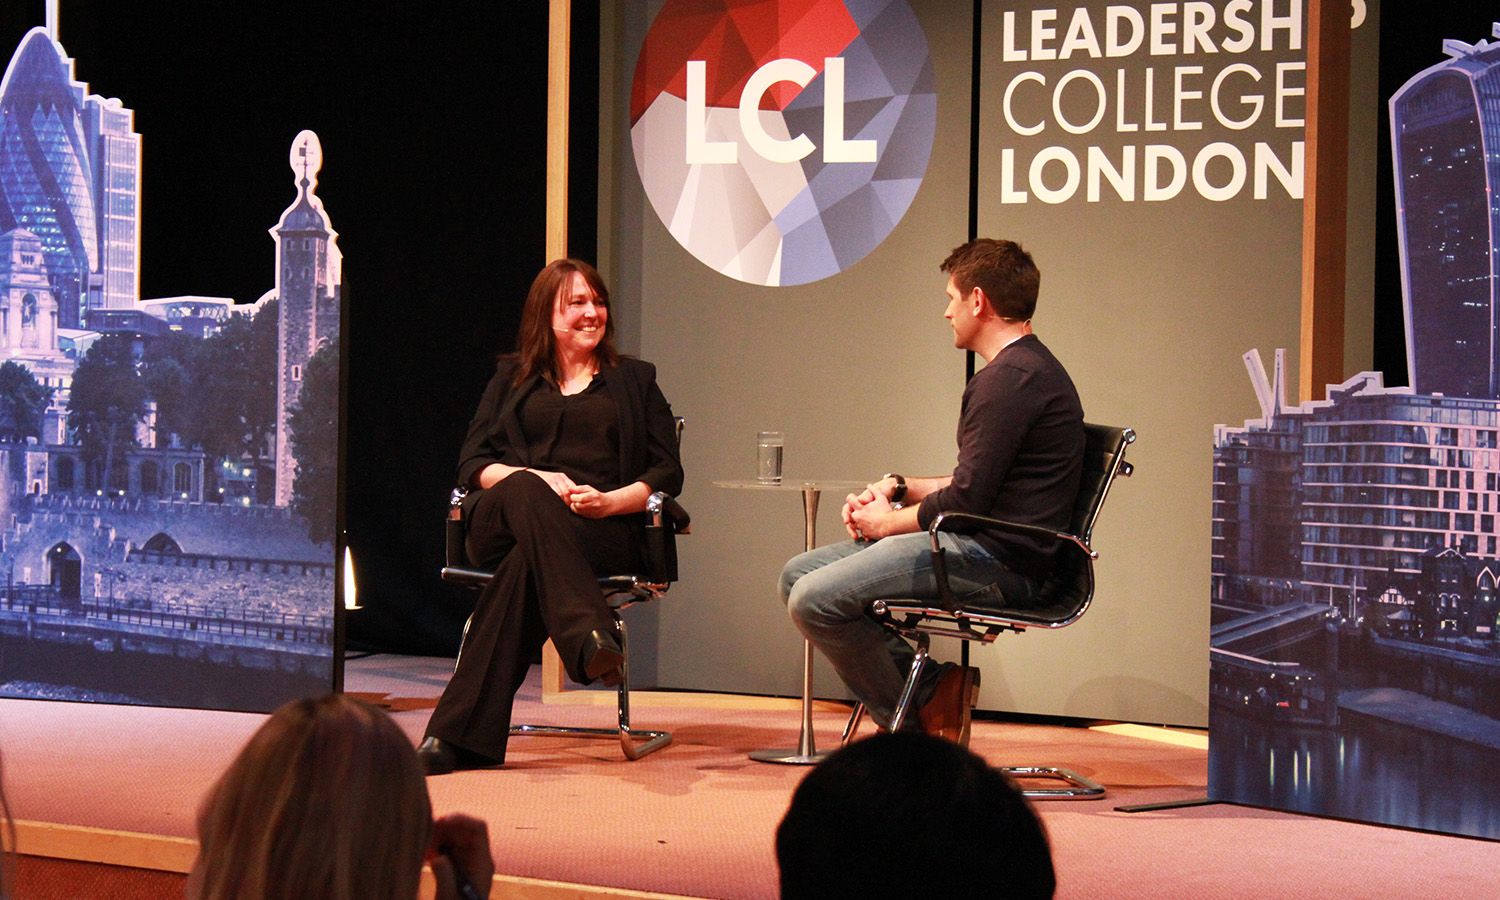 LCL-Distinctive-Leadership-Course-Nikki-Marfleet.jpg